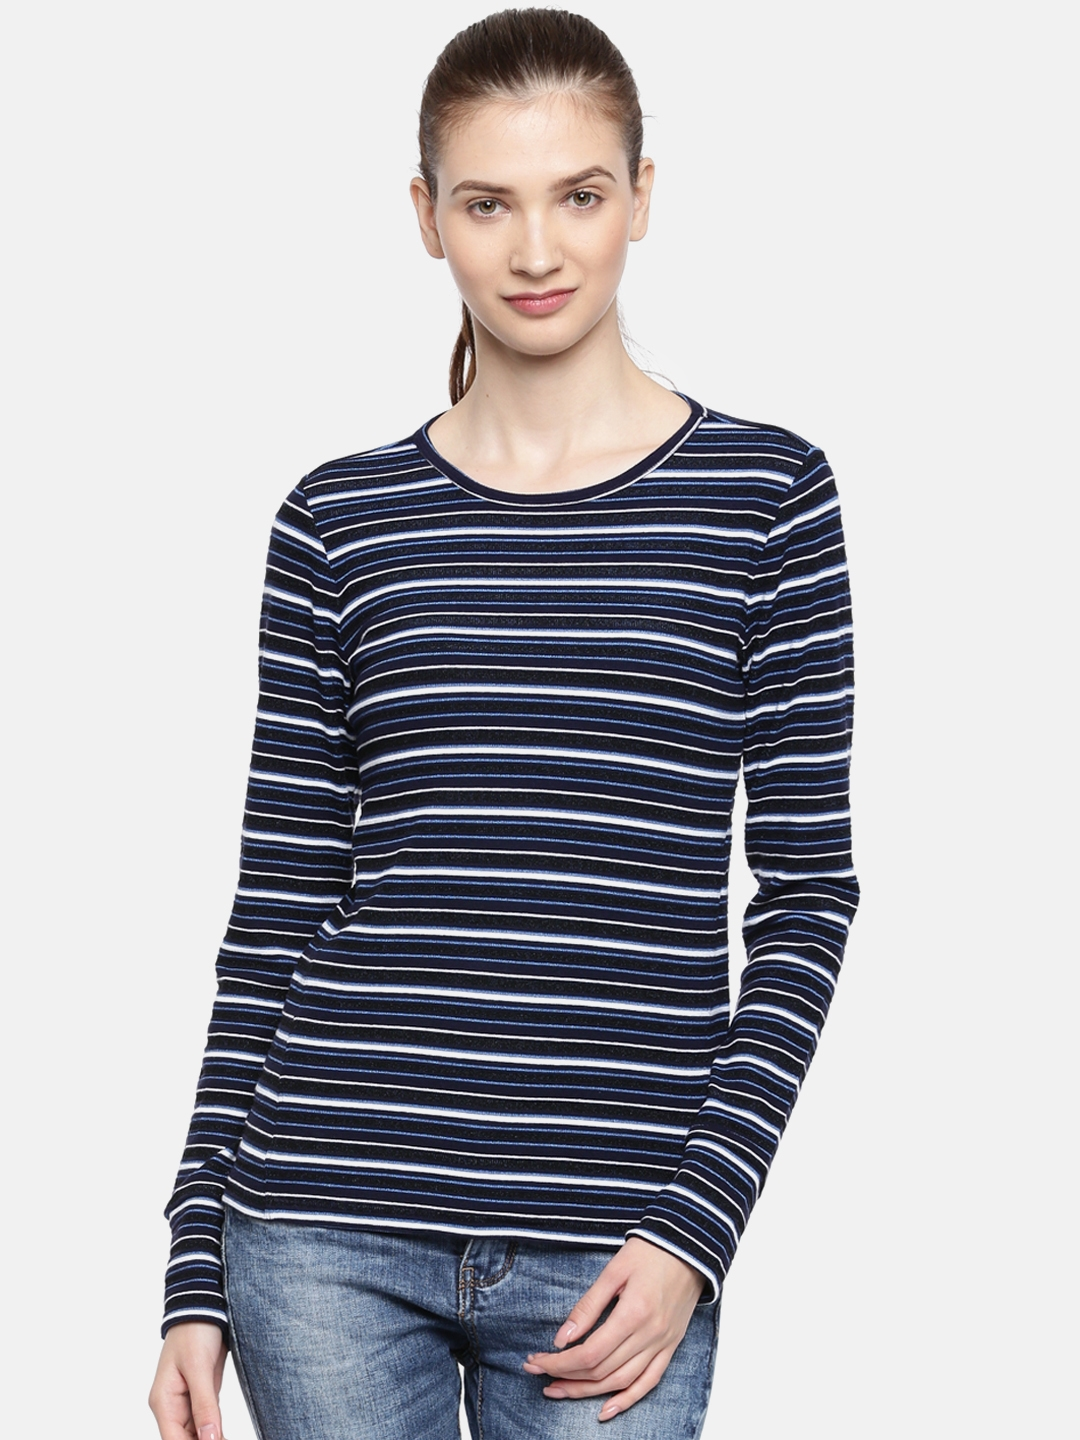 f6deacdbcf Buy GAP Women Navy Blue Striped Round Neck T Shirt - Tshirts for ...